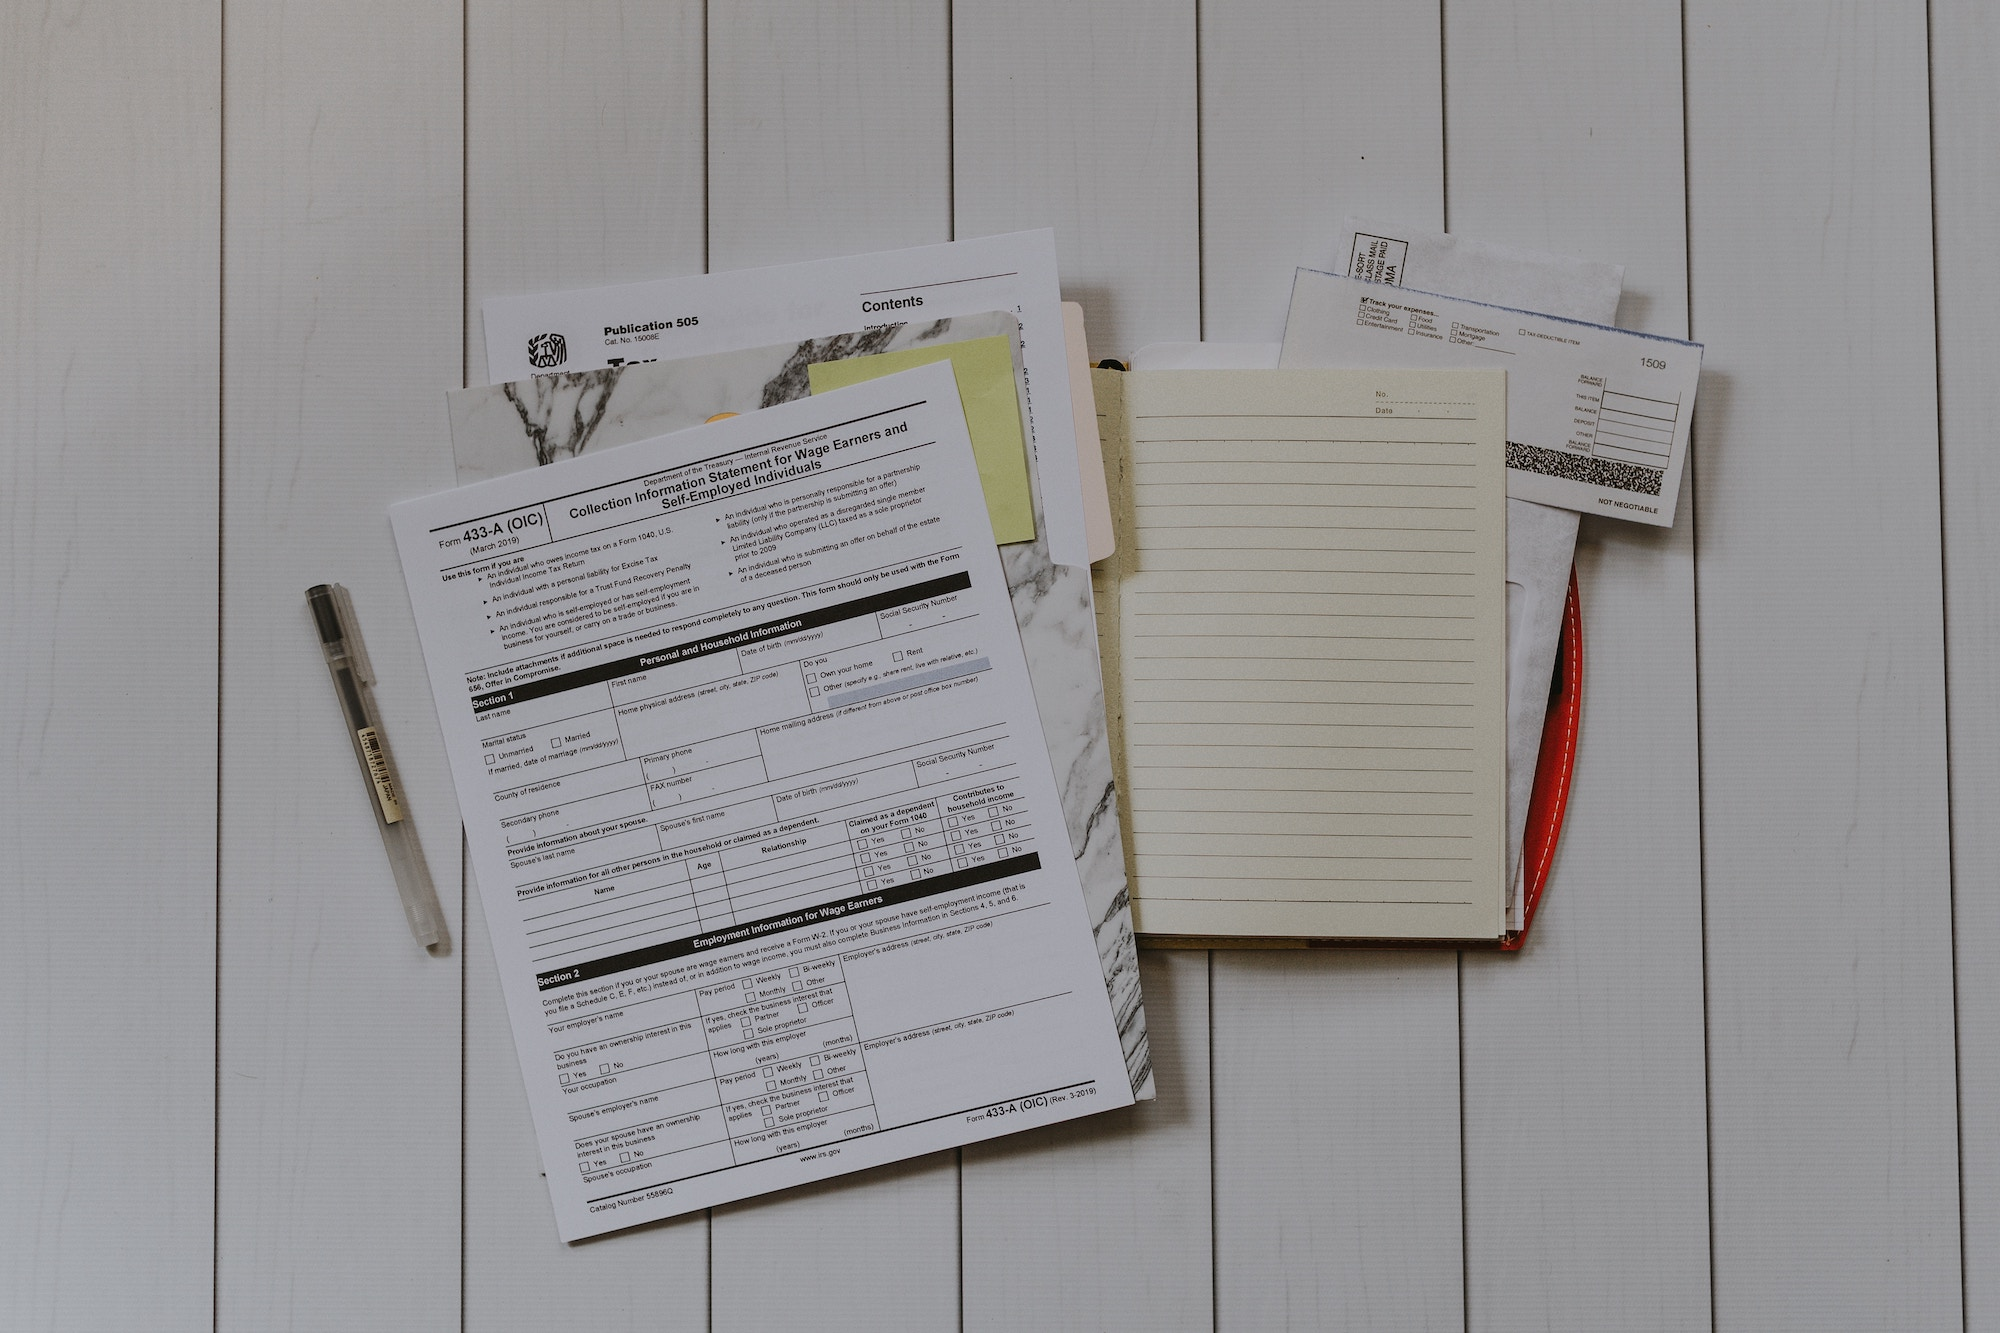 Professional photo taken of various tax documents and forums spread out